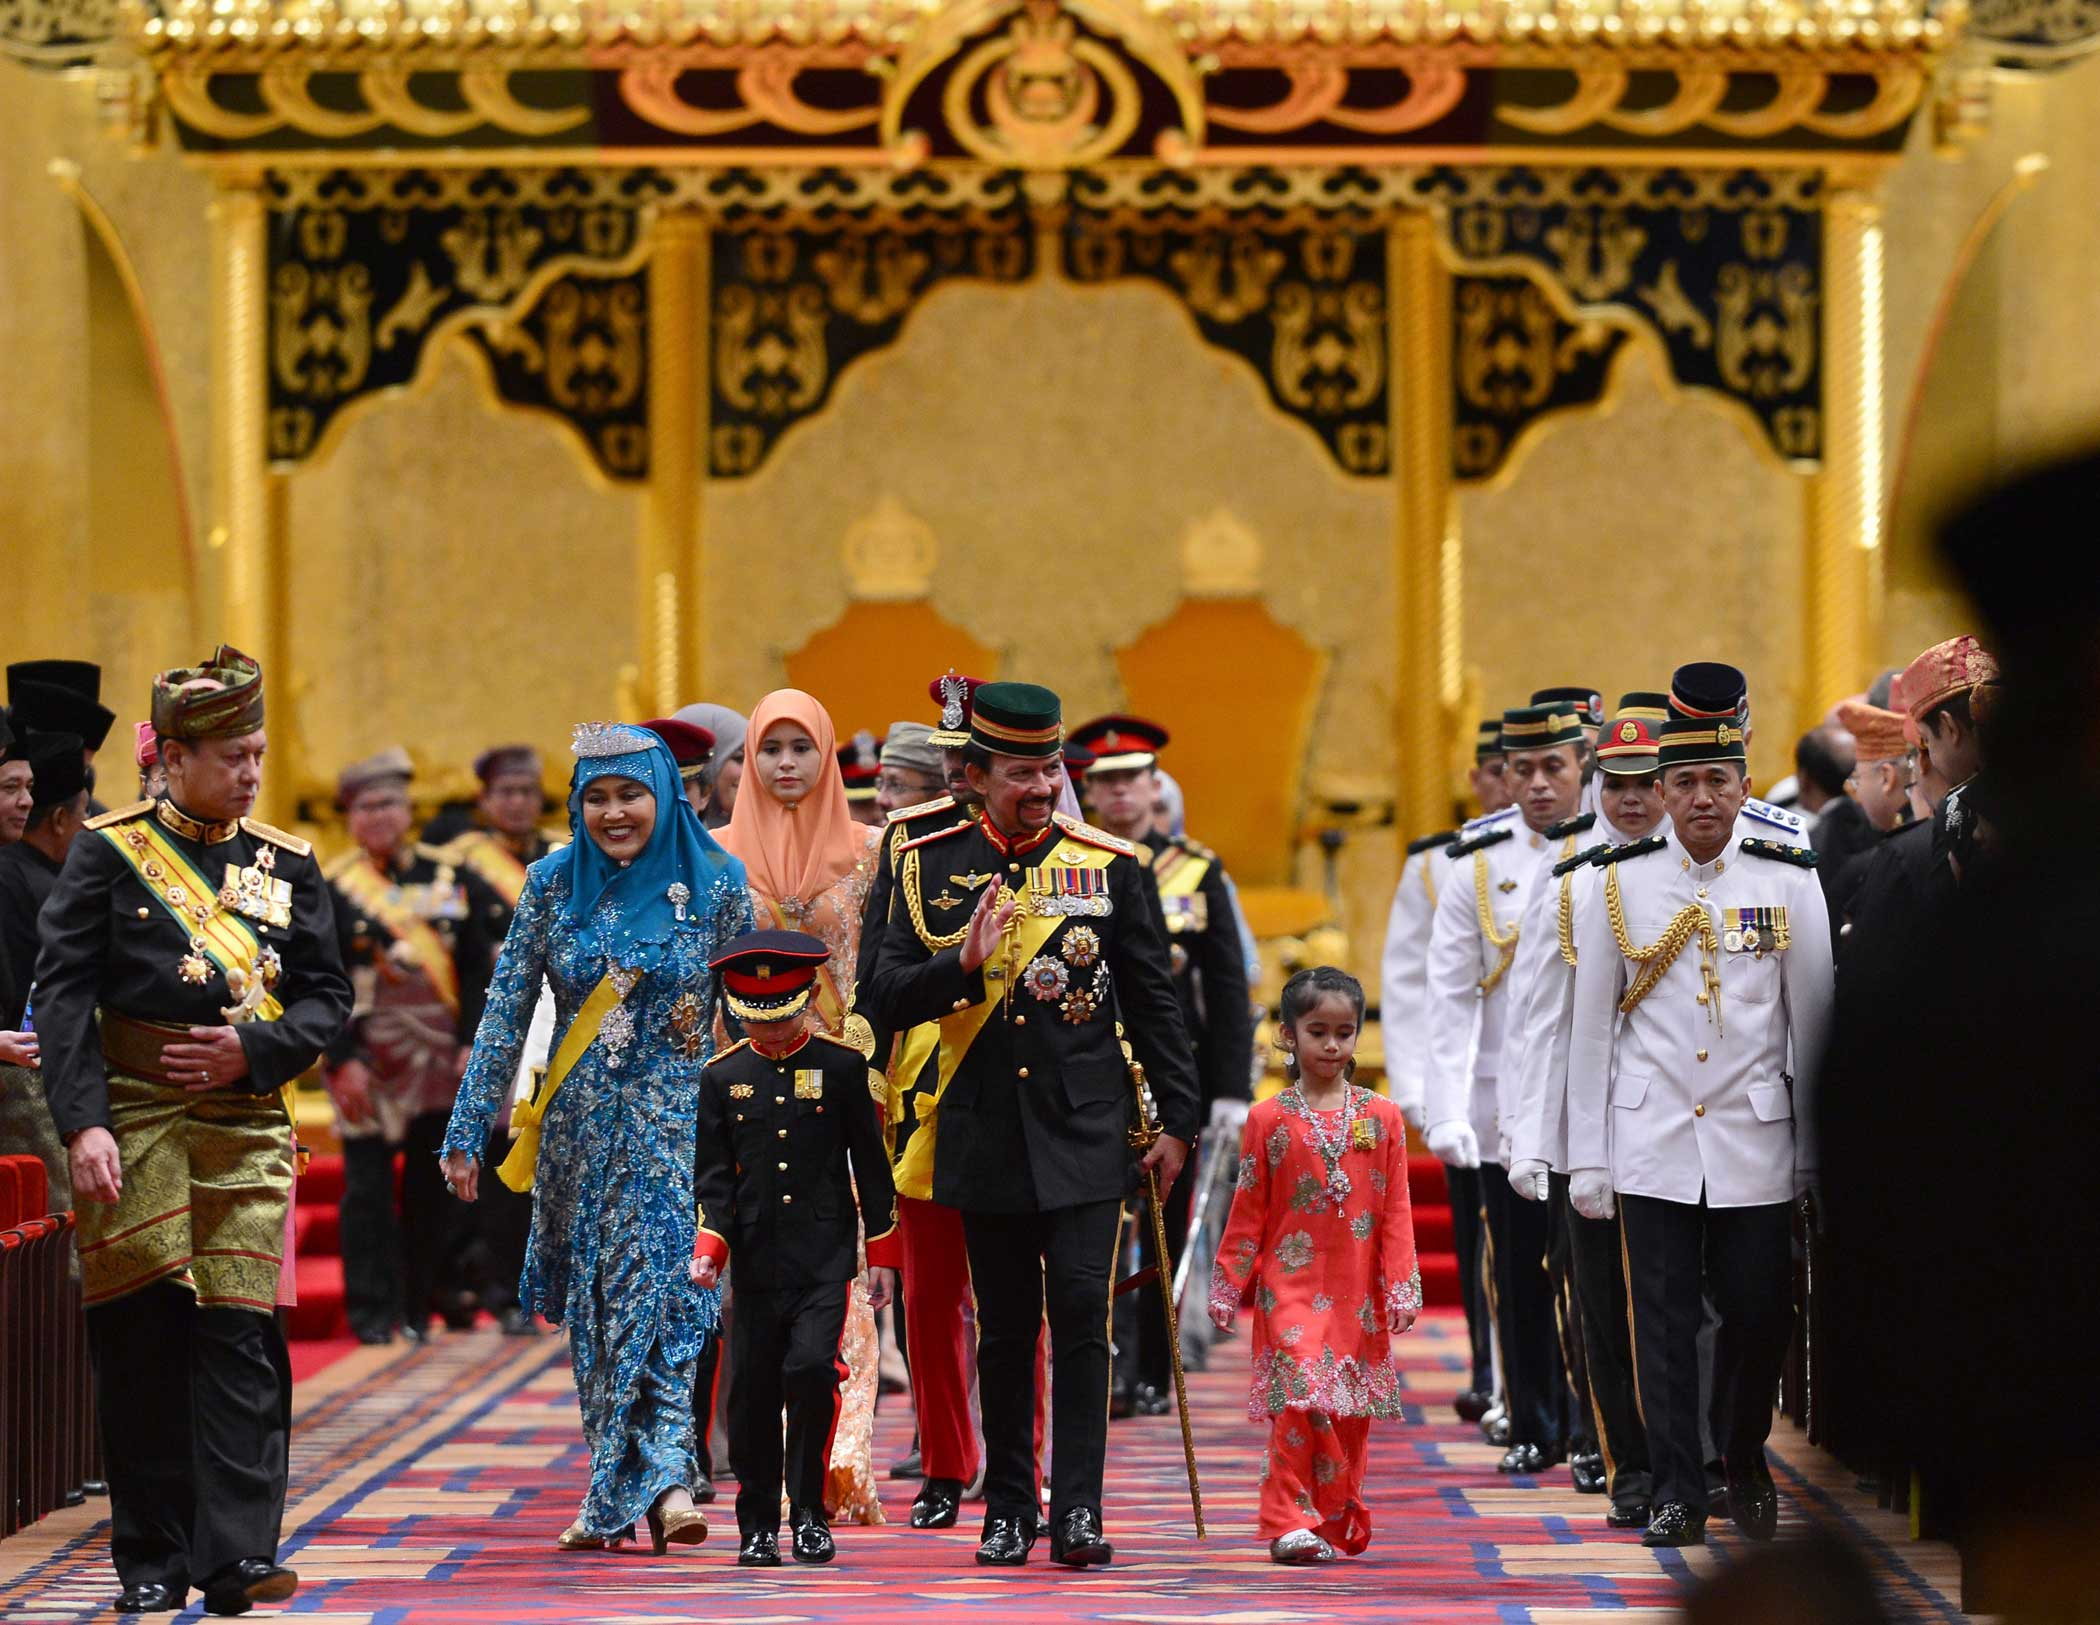 Bruneiís Sultan Hassanal Bolkiah and members of the royal family leave the throne room after his 67th birthday celebrations at Nurul Iman Palace in Bandar Seri Begawan on Sept. 15, 2013.